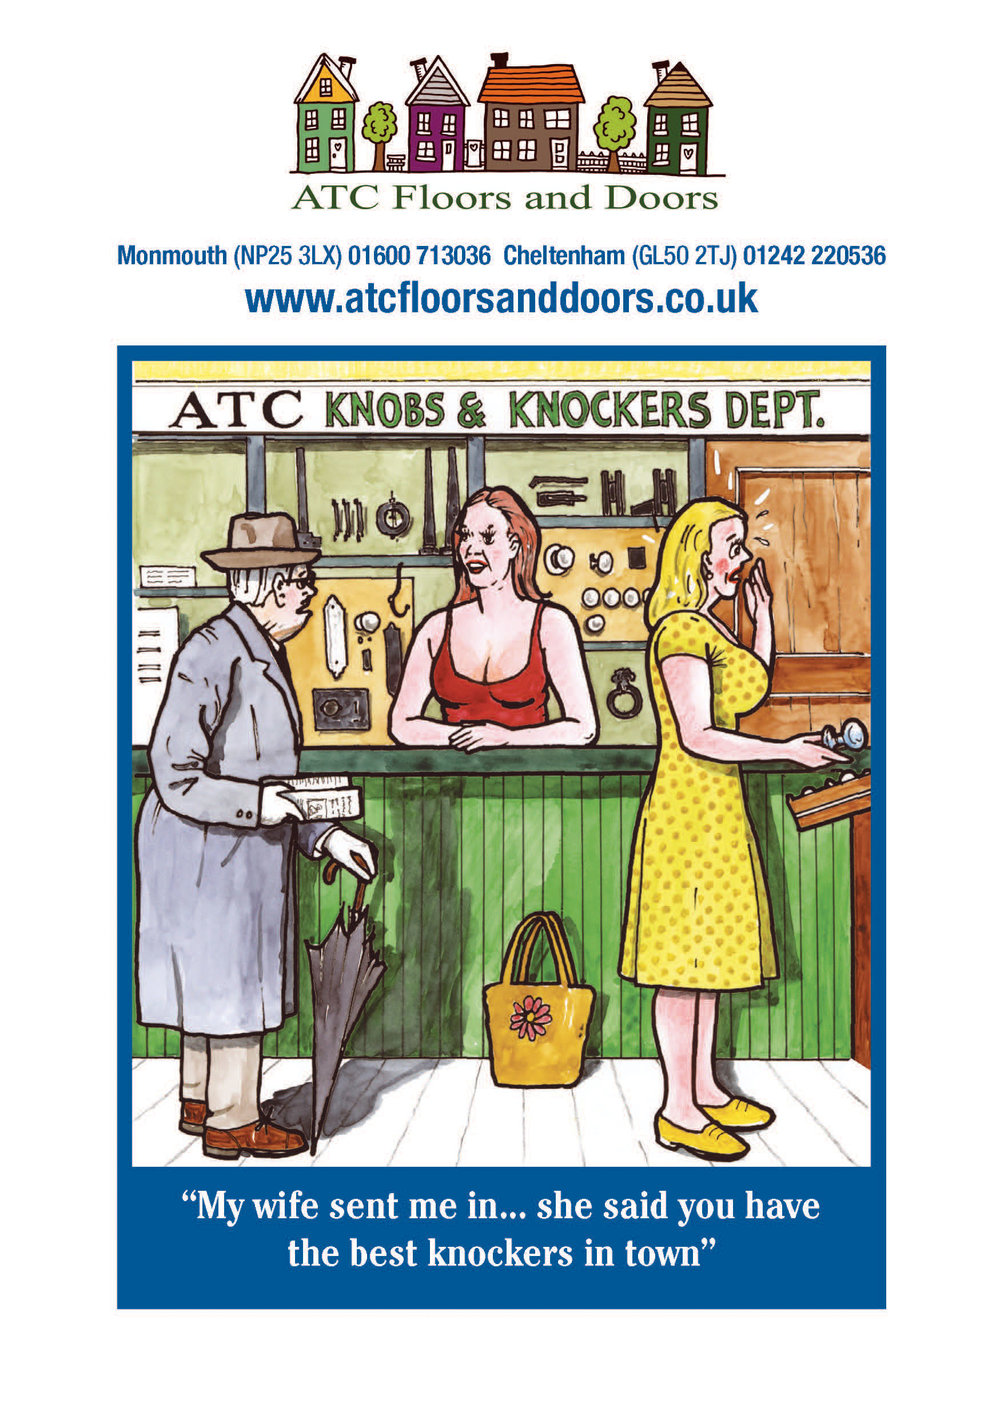 ATC 'Knobs and Knockers' Advert